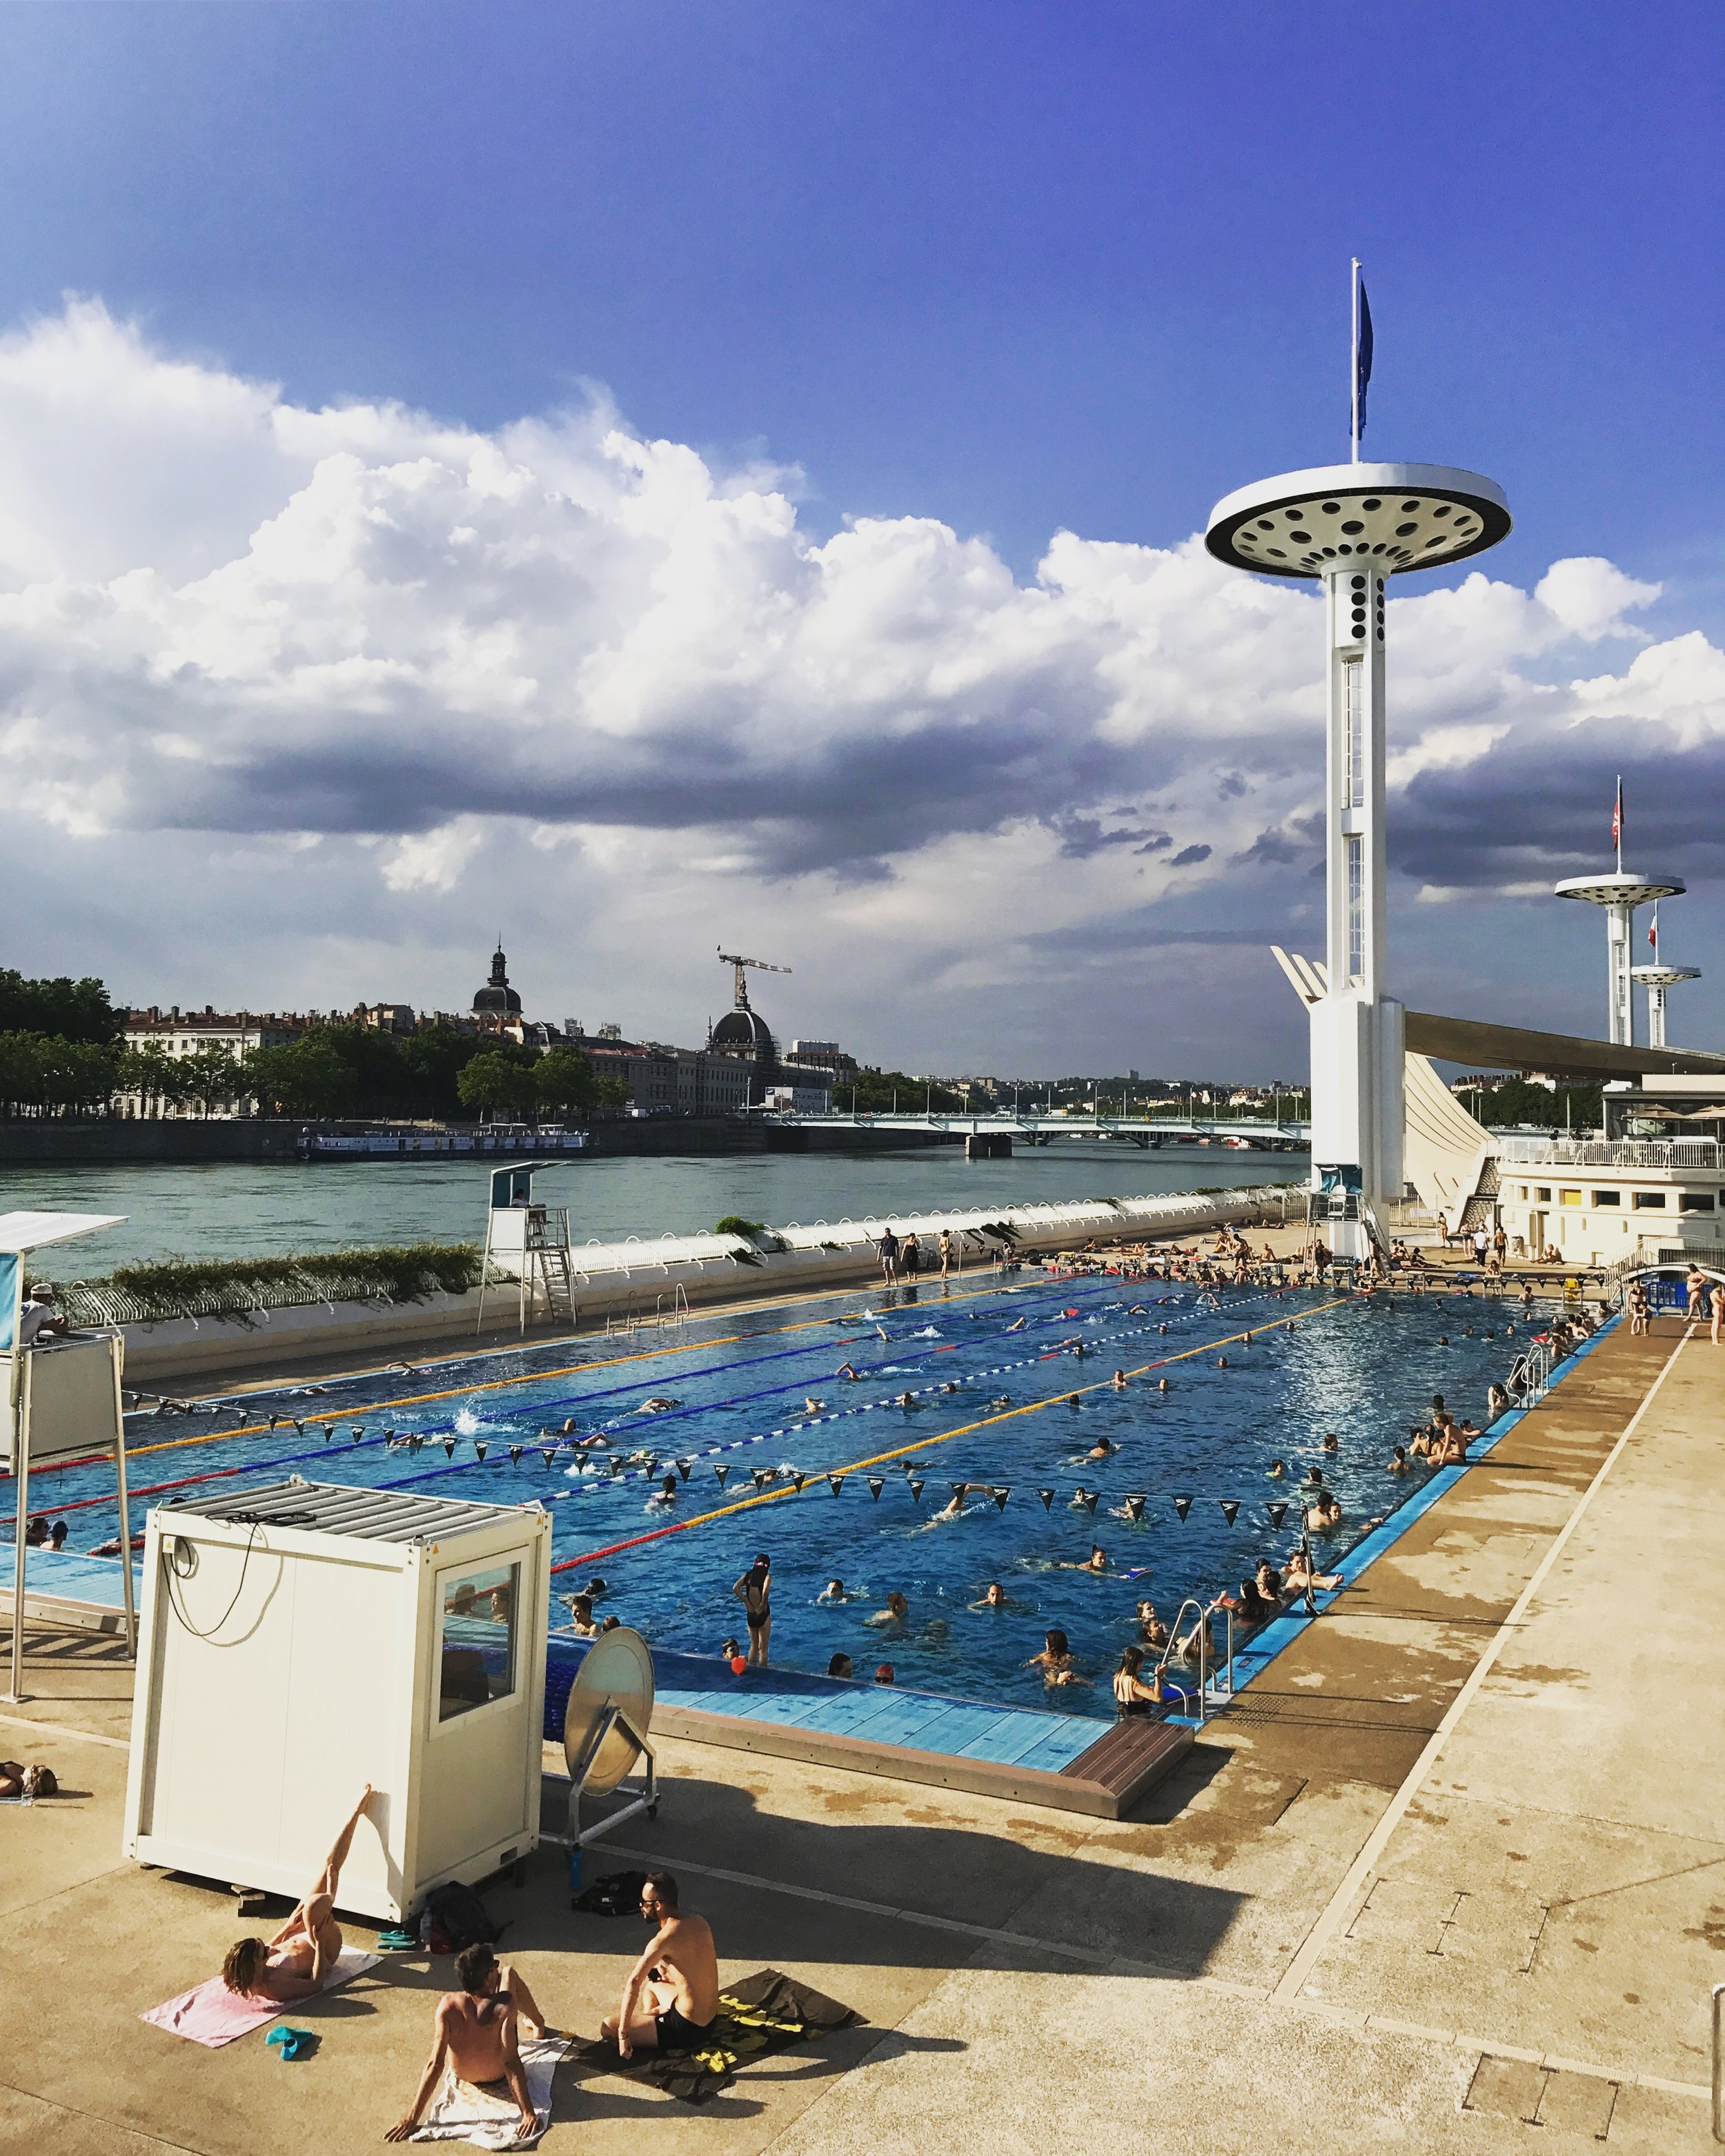 You may not be able to swim in the river, but Lyon does have amazing open air swimming facilities; something Brussels is craving for.